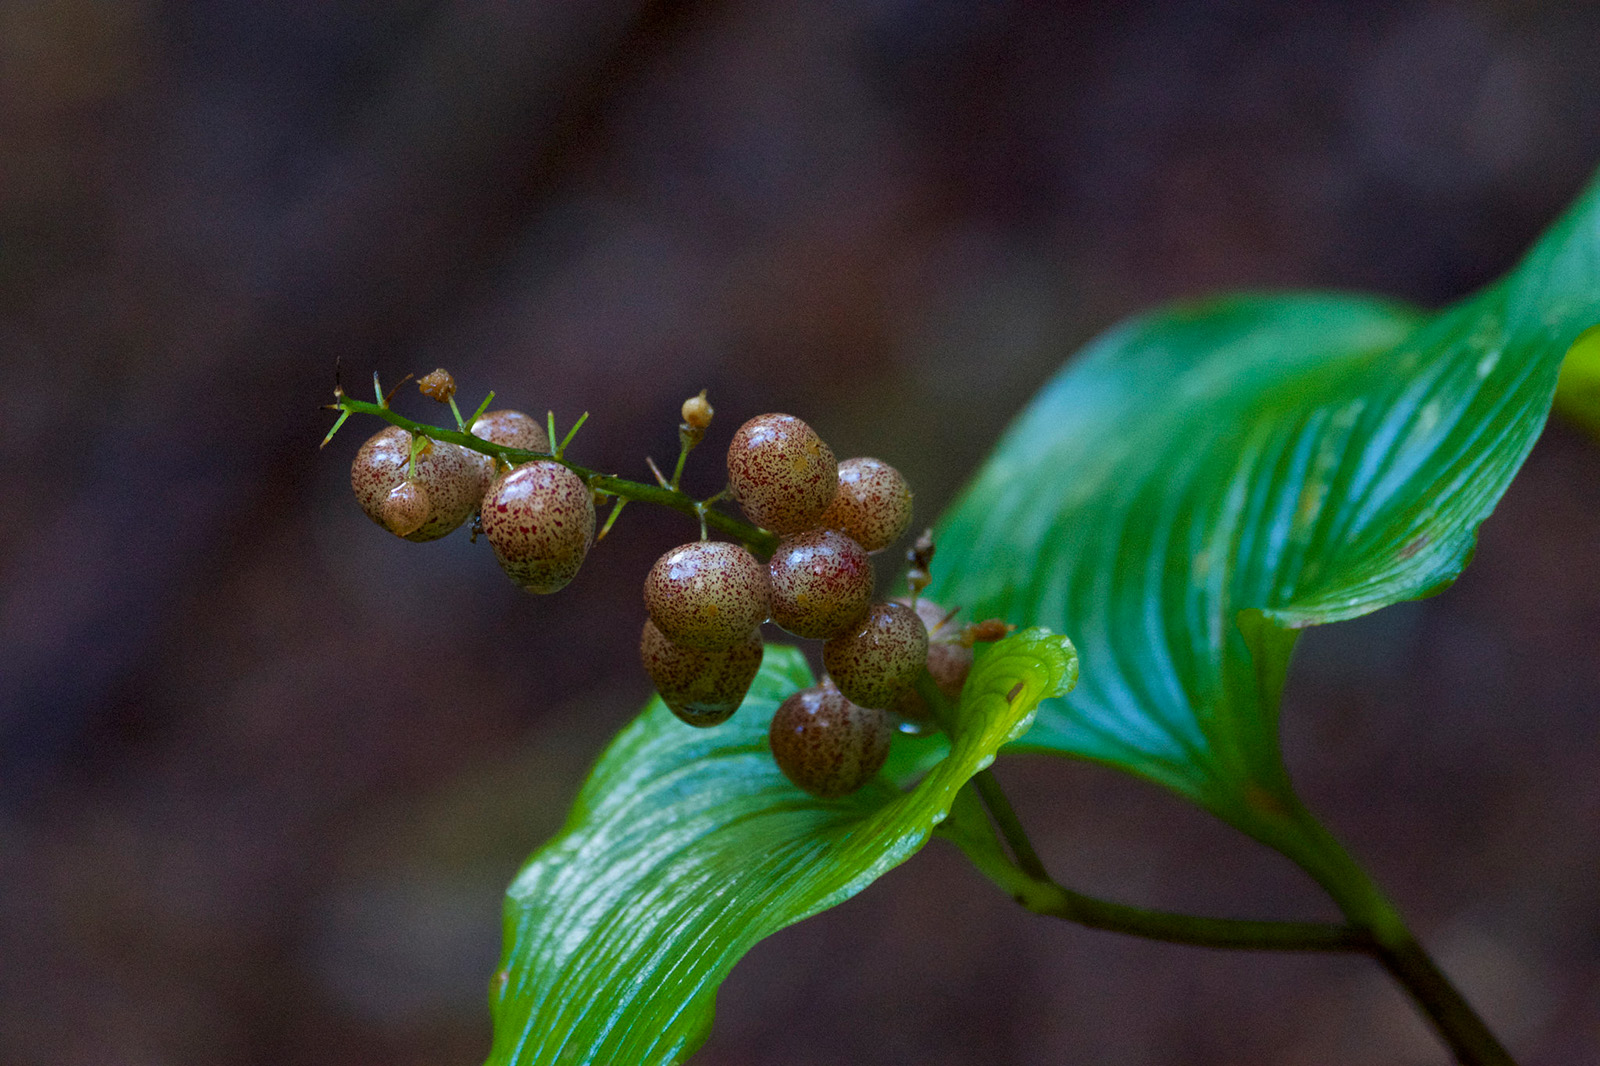 The fruit of Maianthemum dilatatum